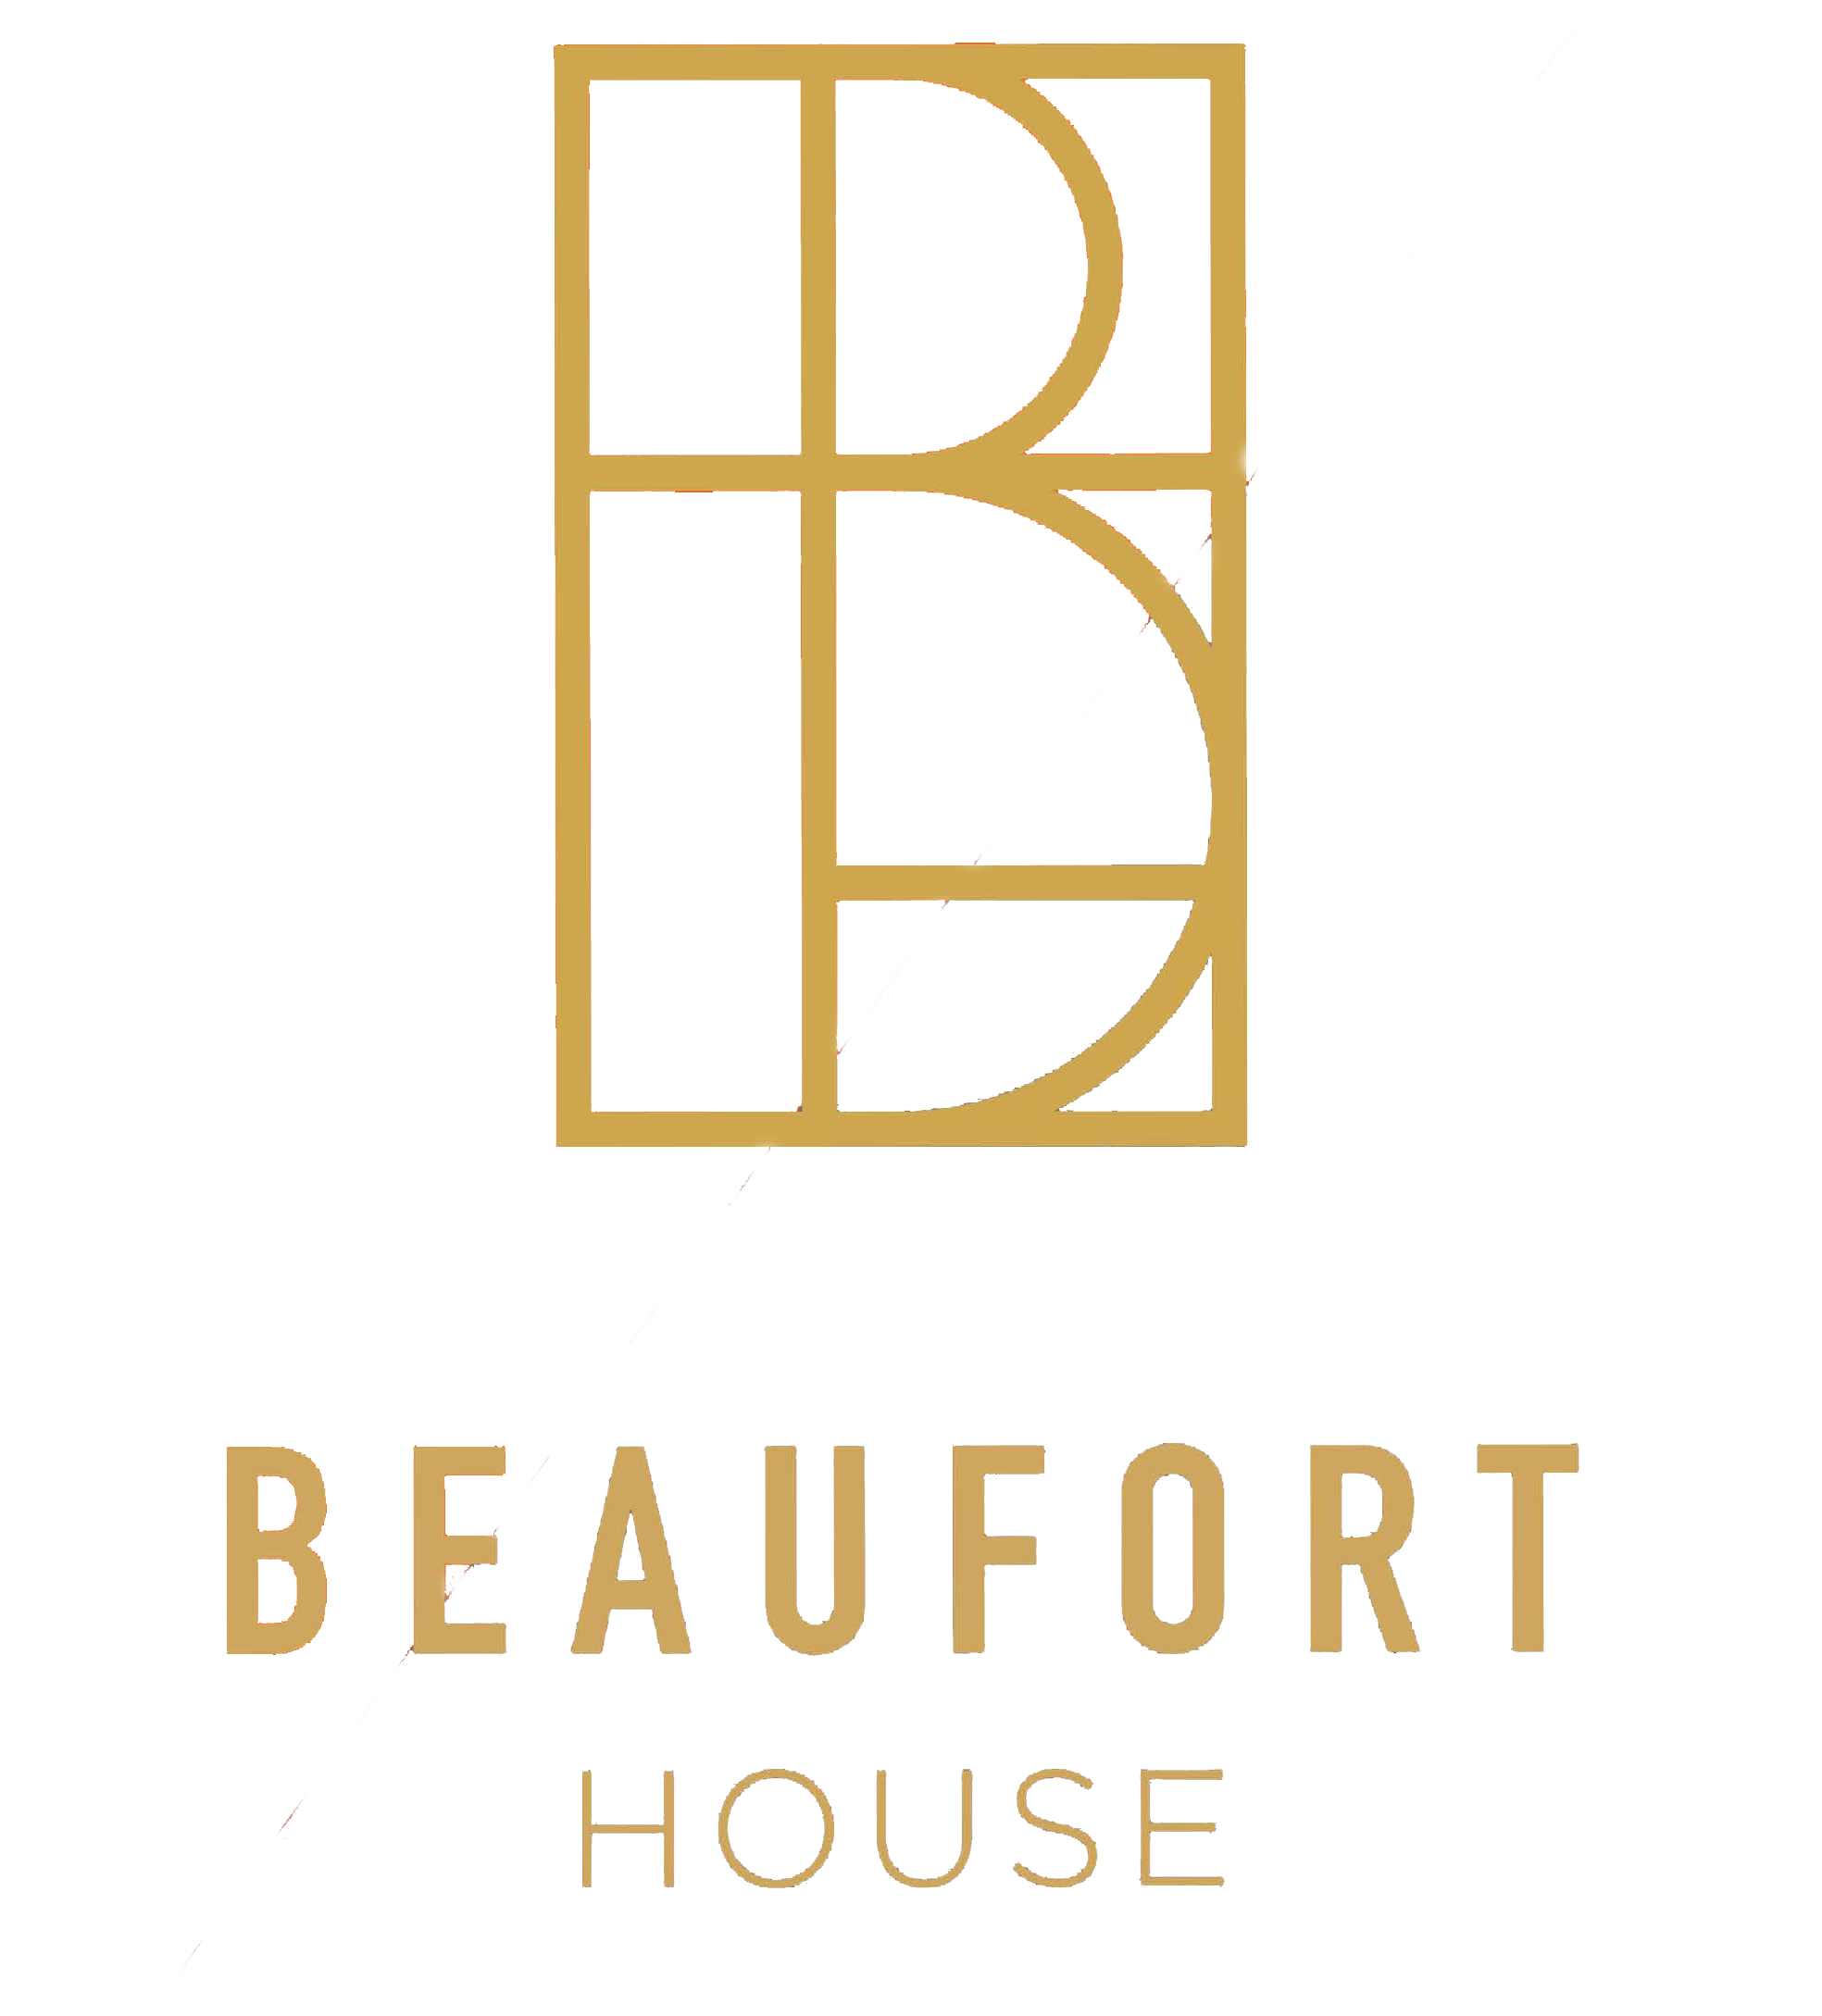 Beaufort House, Birmingham City Centre